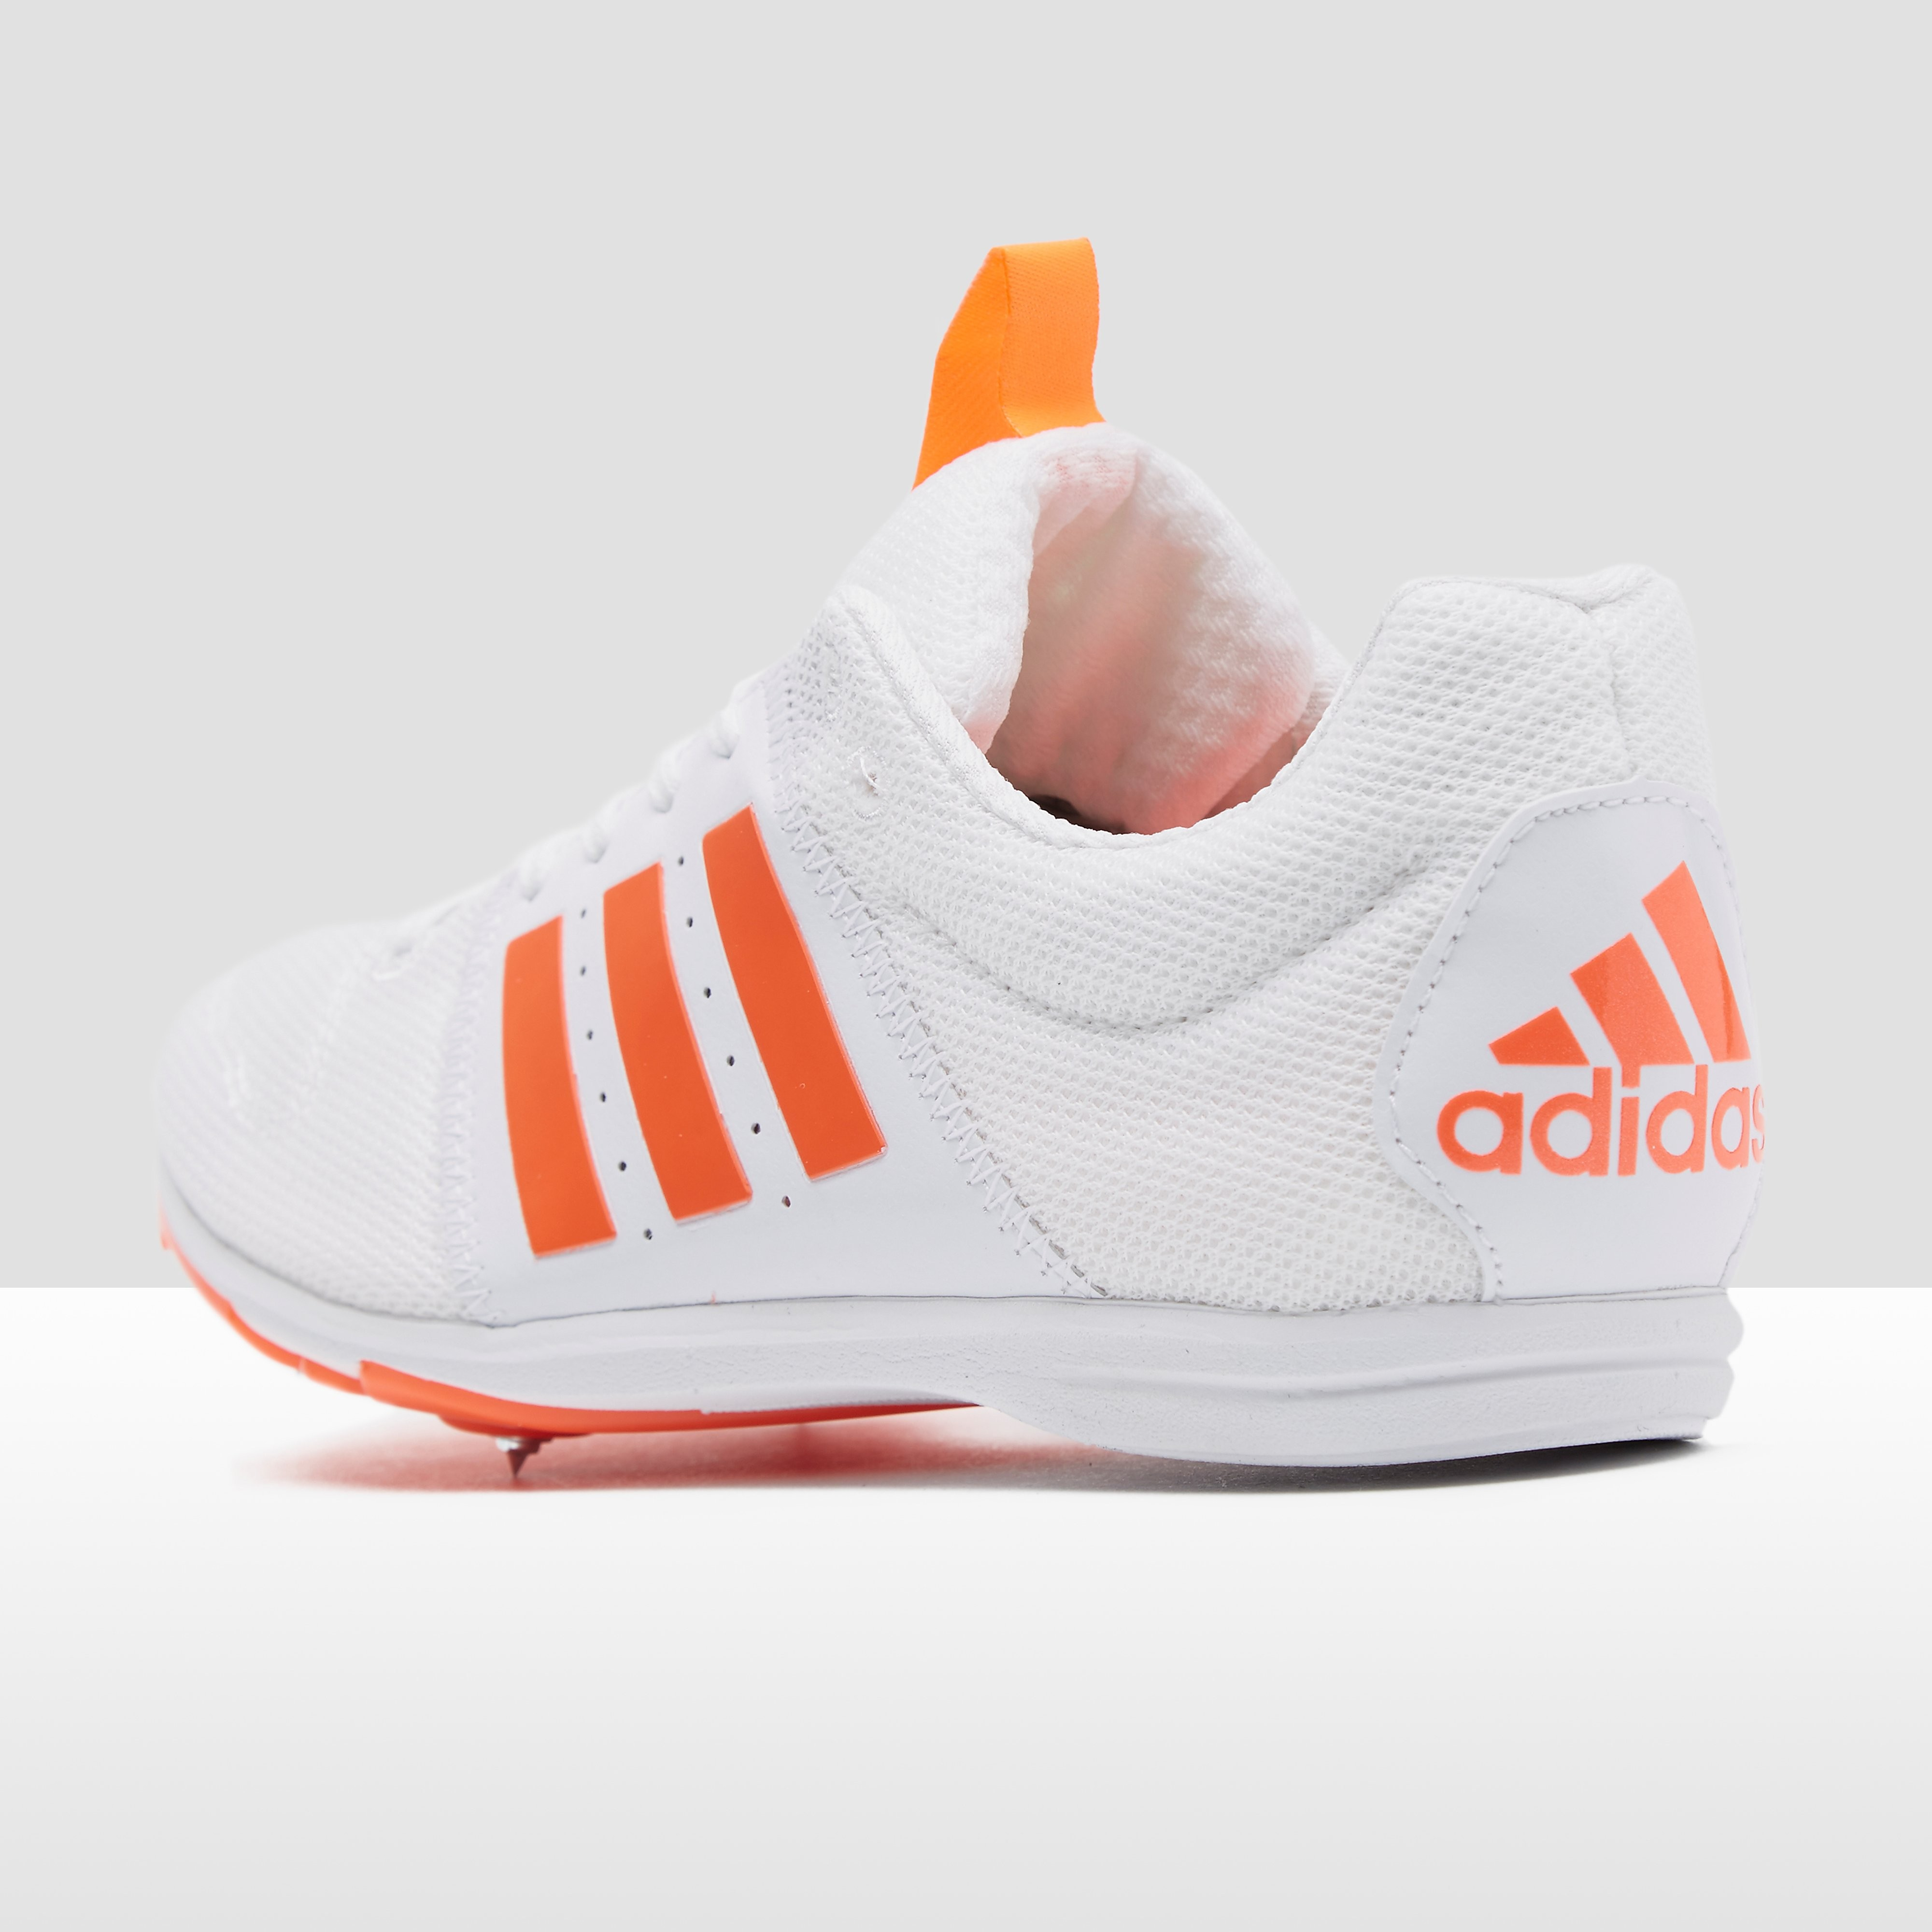 adidas Allroundstar Junior Running Spikes